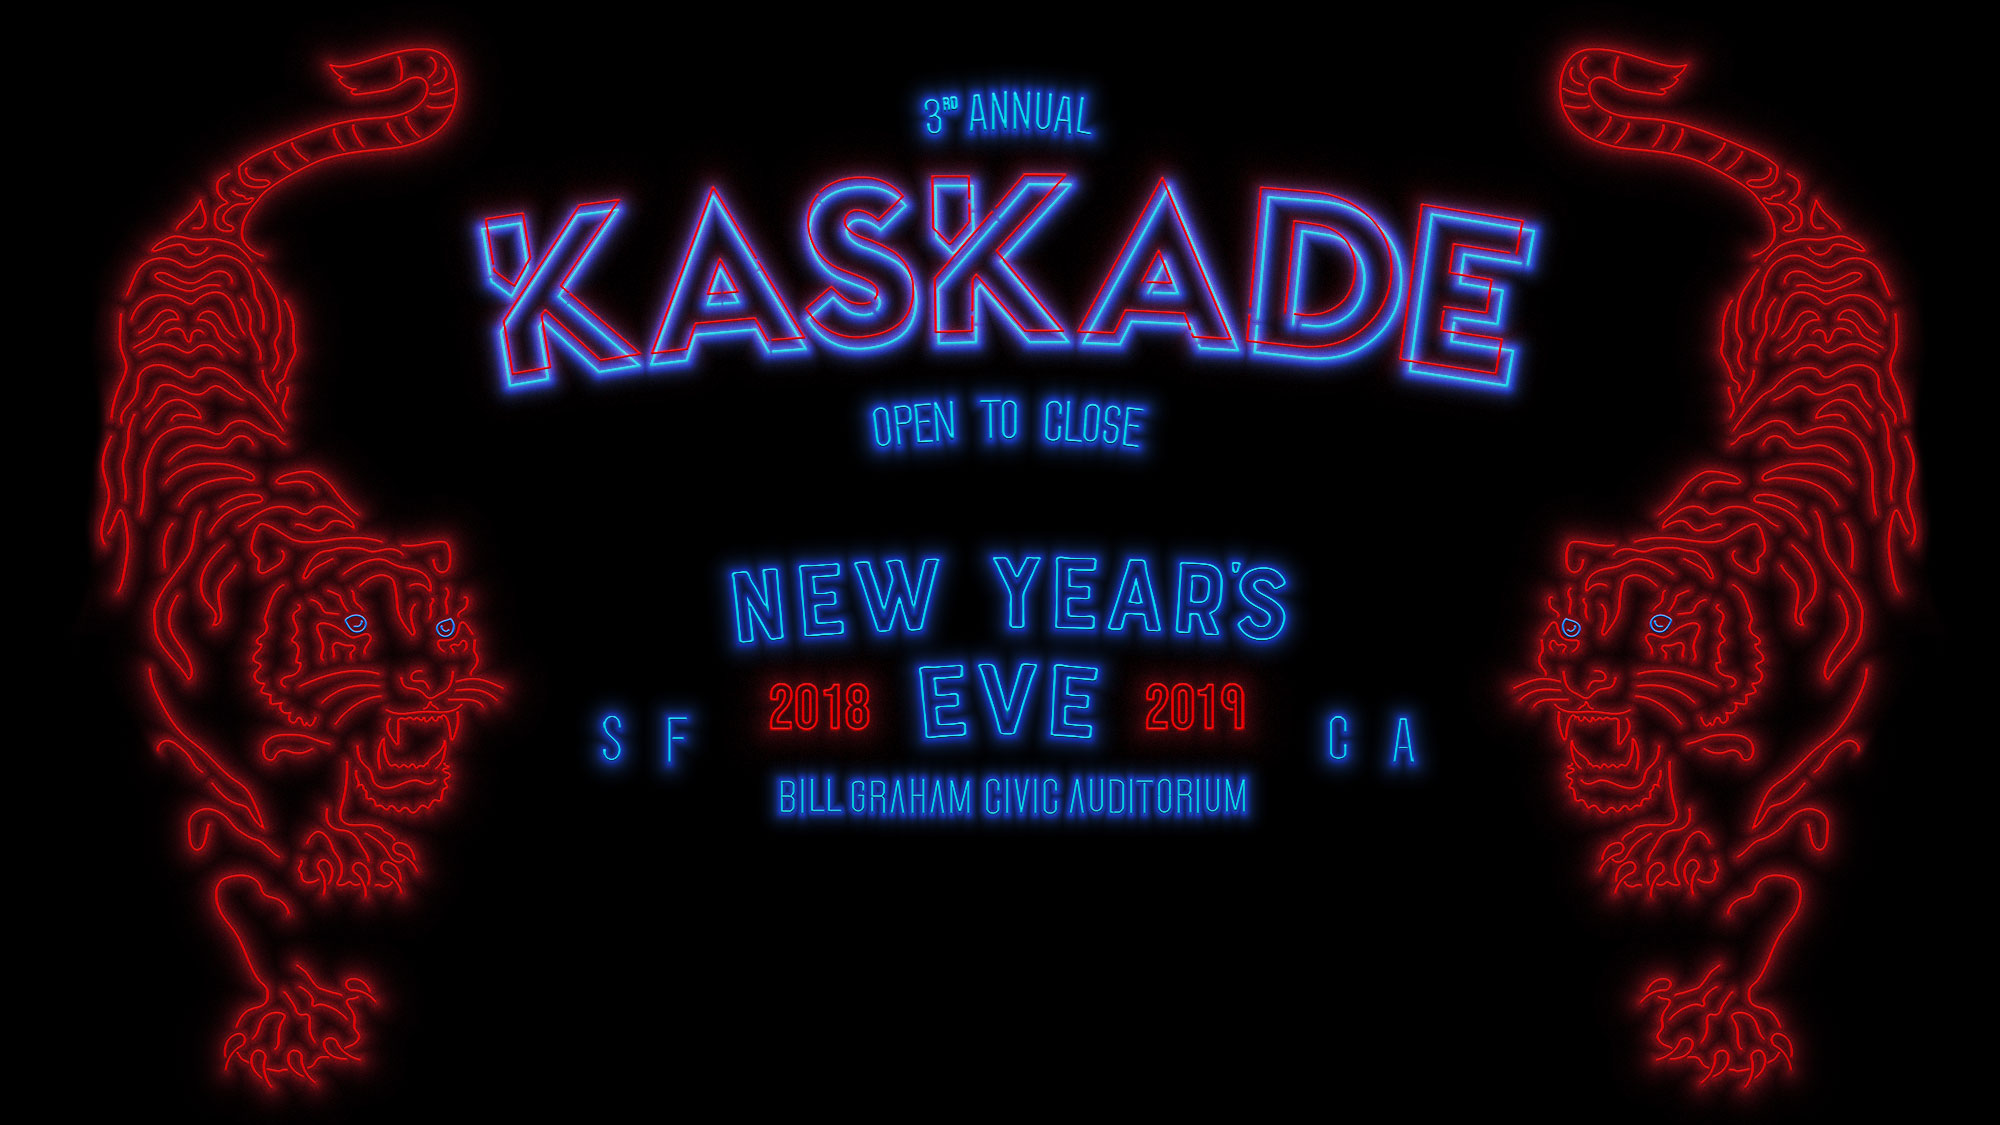 new years eve one night only kaskade open to close